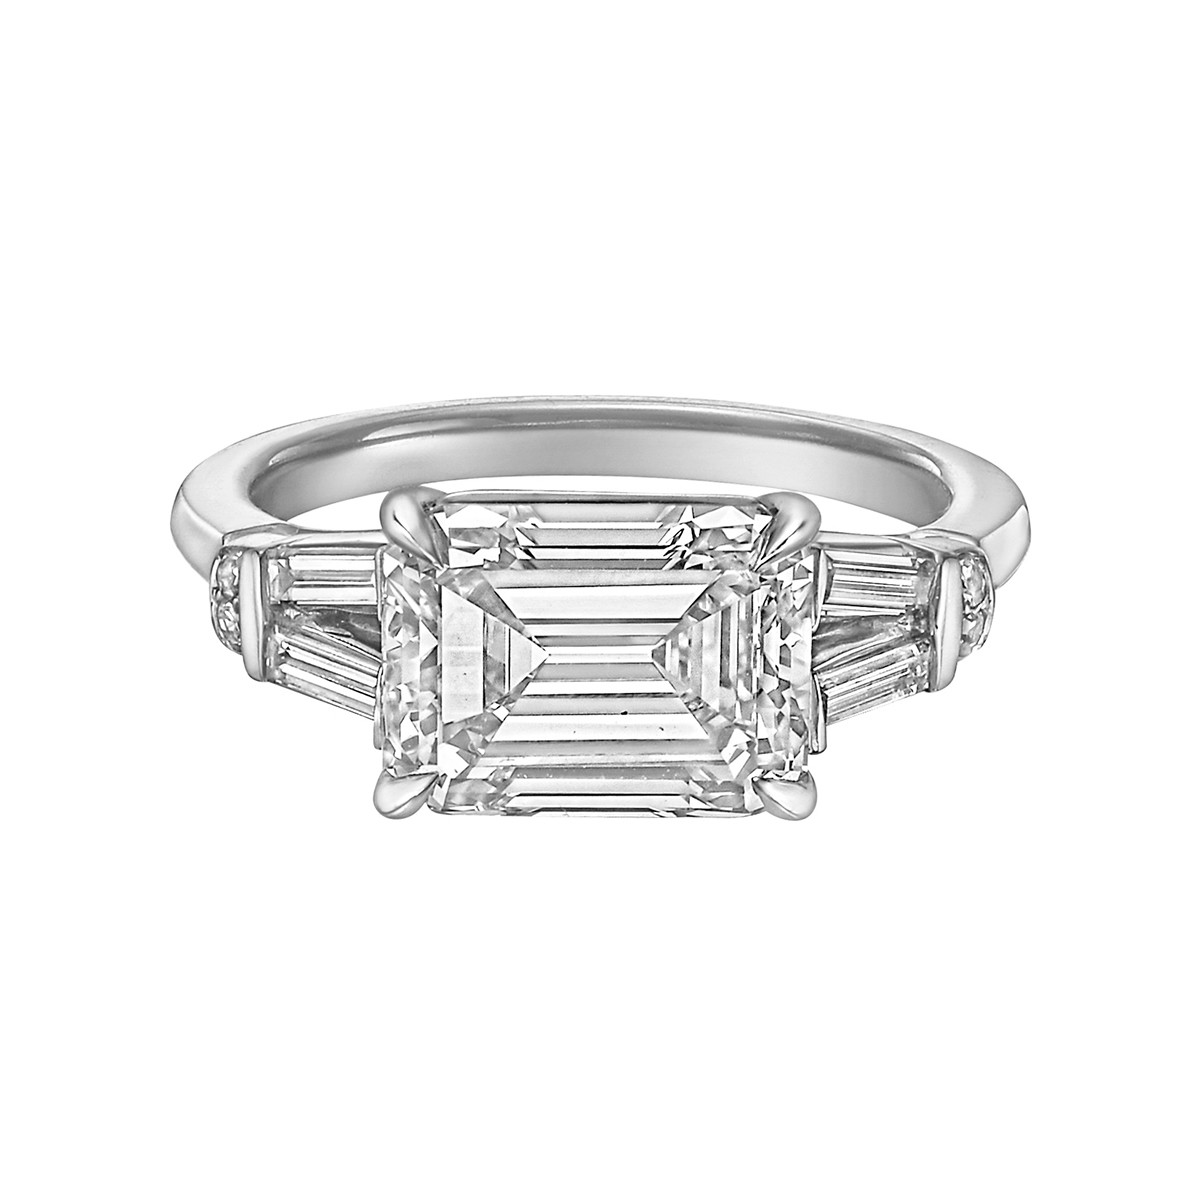 3.02ct Emerald-Cut Diamond East-West Ring